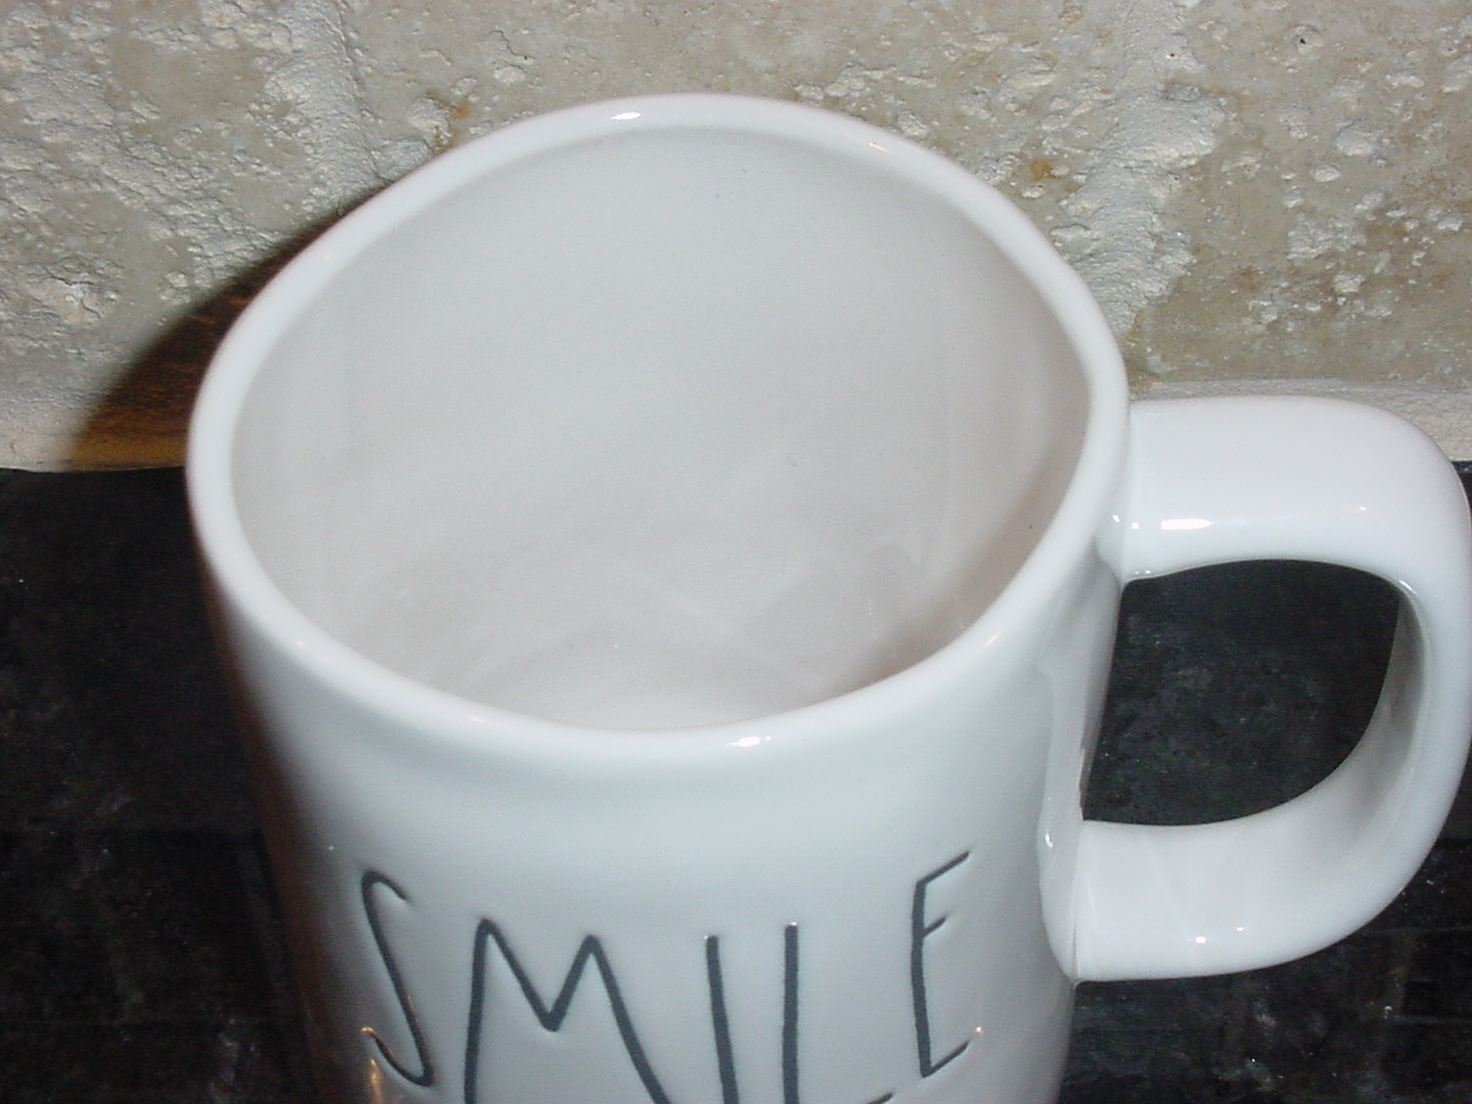 Rae Dunn SMILE Rustic Mug, Ivory with Black Letters, New!